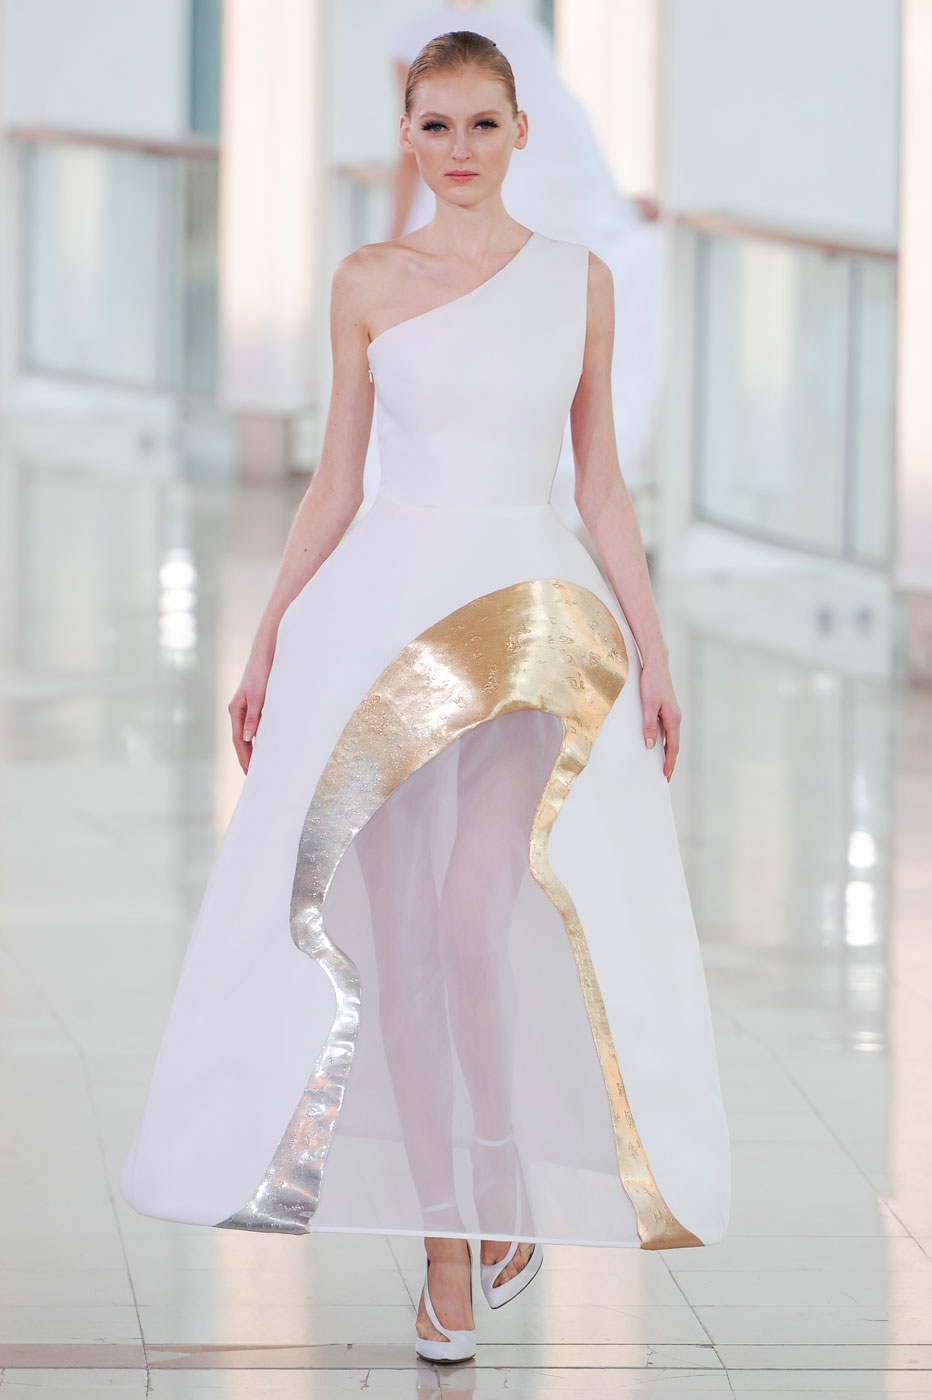 stephane-rolland-fashion-runway-show-haute-couture-paris-spring-2015-the-impression-47